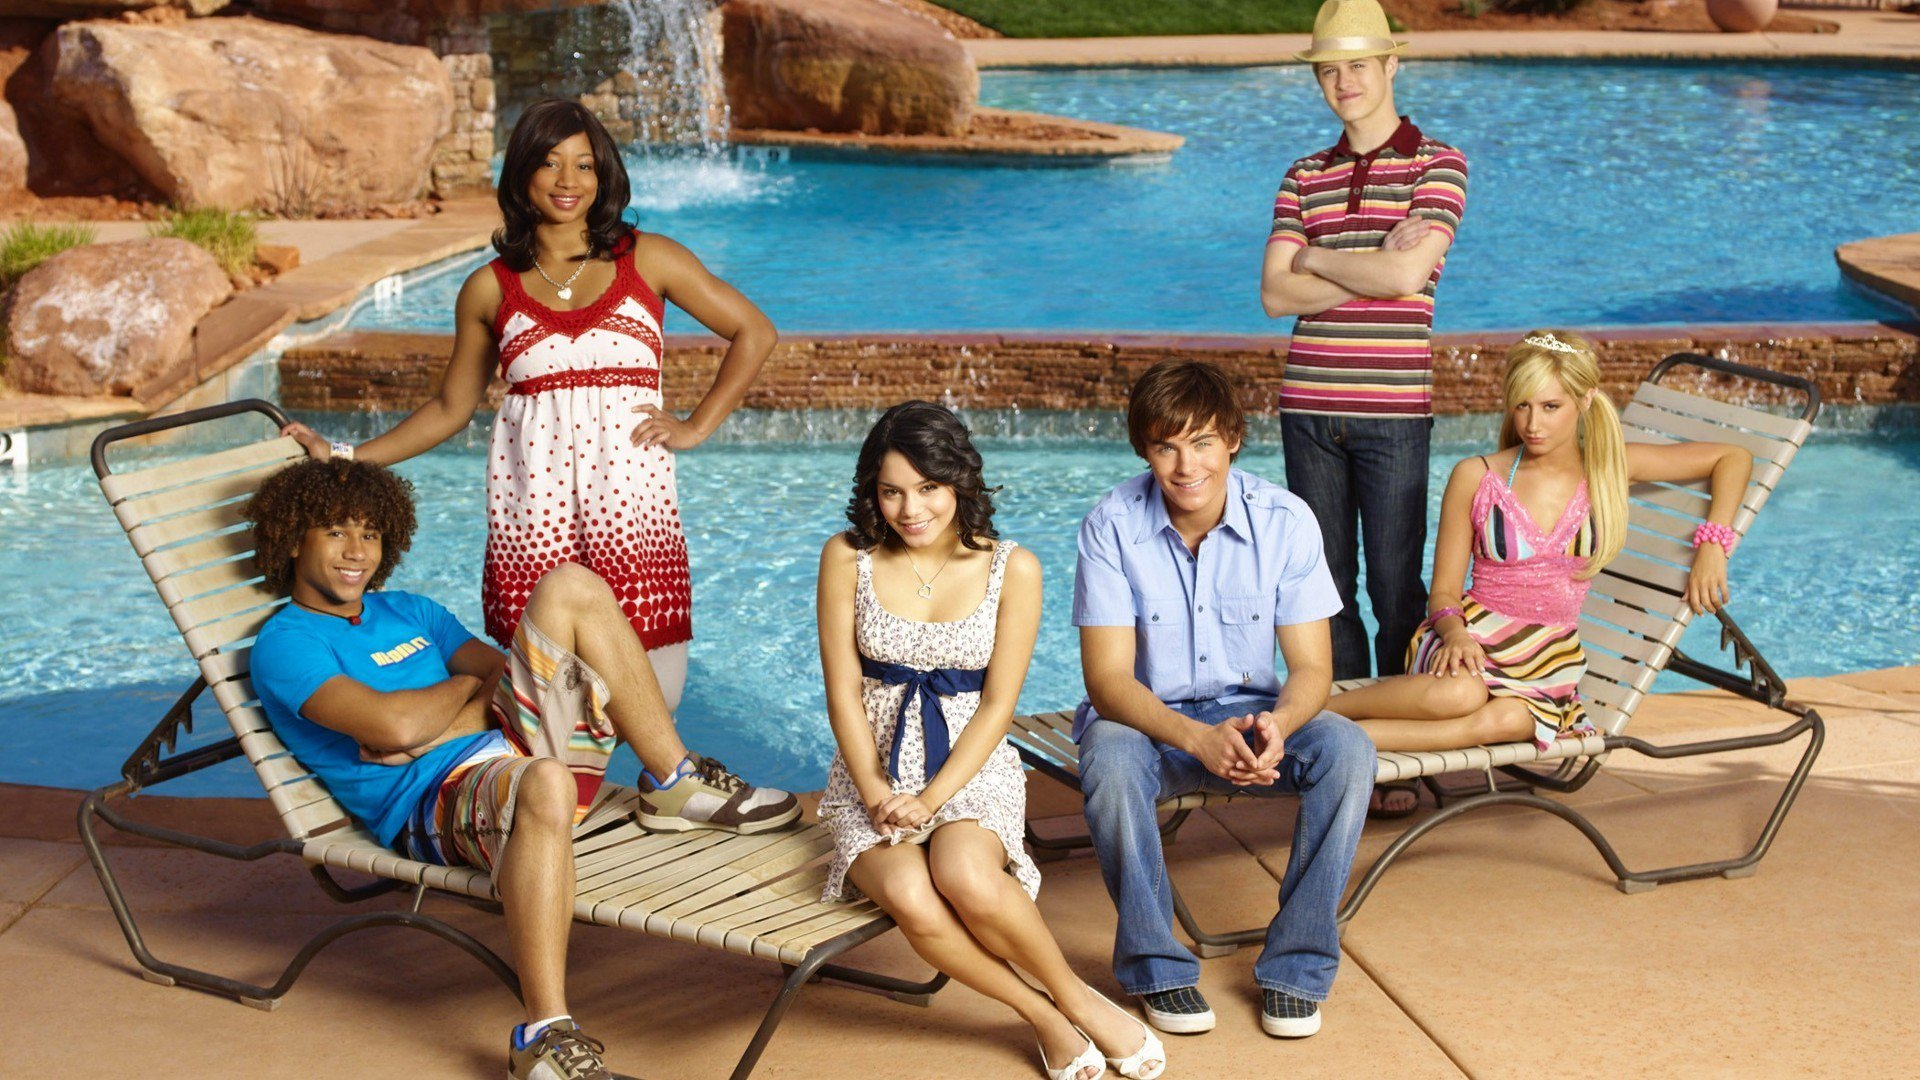 HQ High School Musical 2 Wallpapers | File 409.85Kb